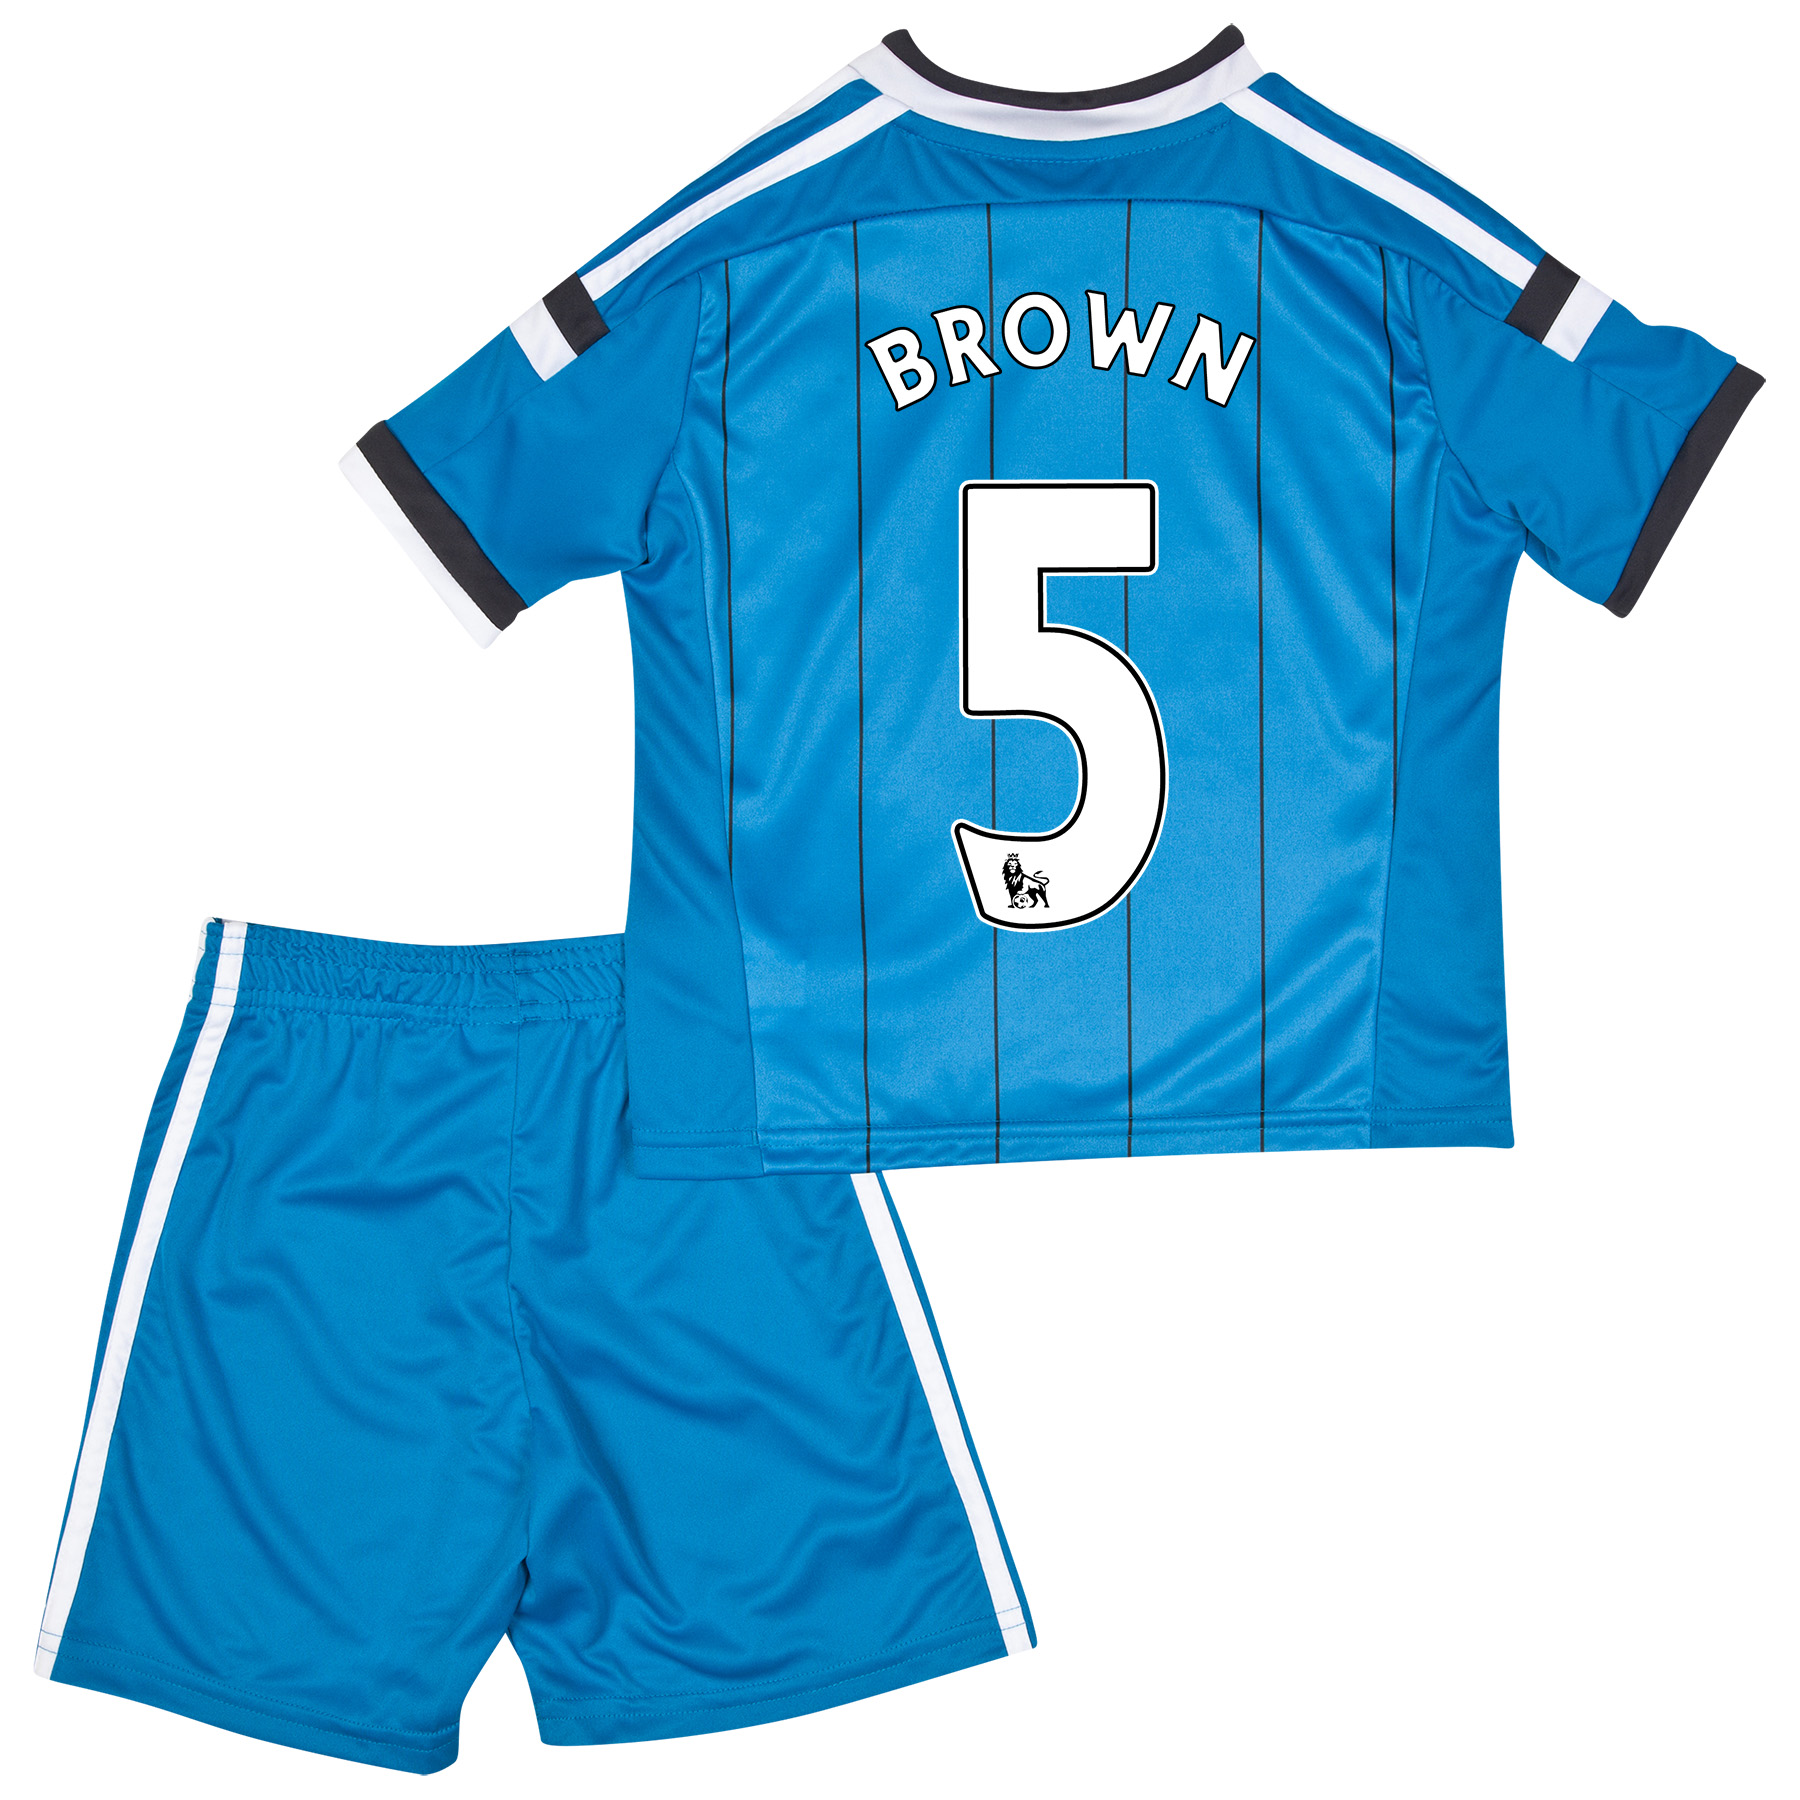 Sunderland Away Mini Kit 2014/15 Lt Blue with Brown 5 printing